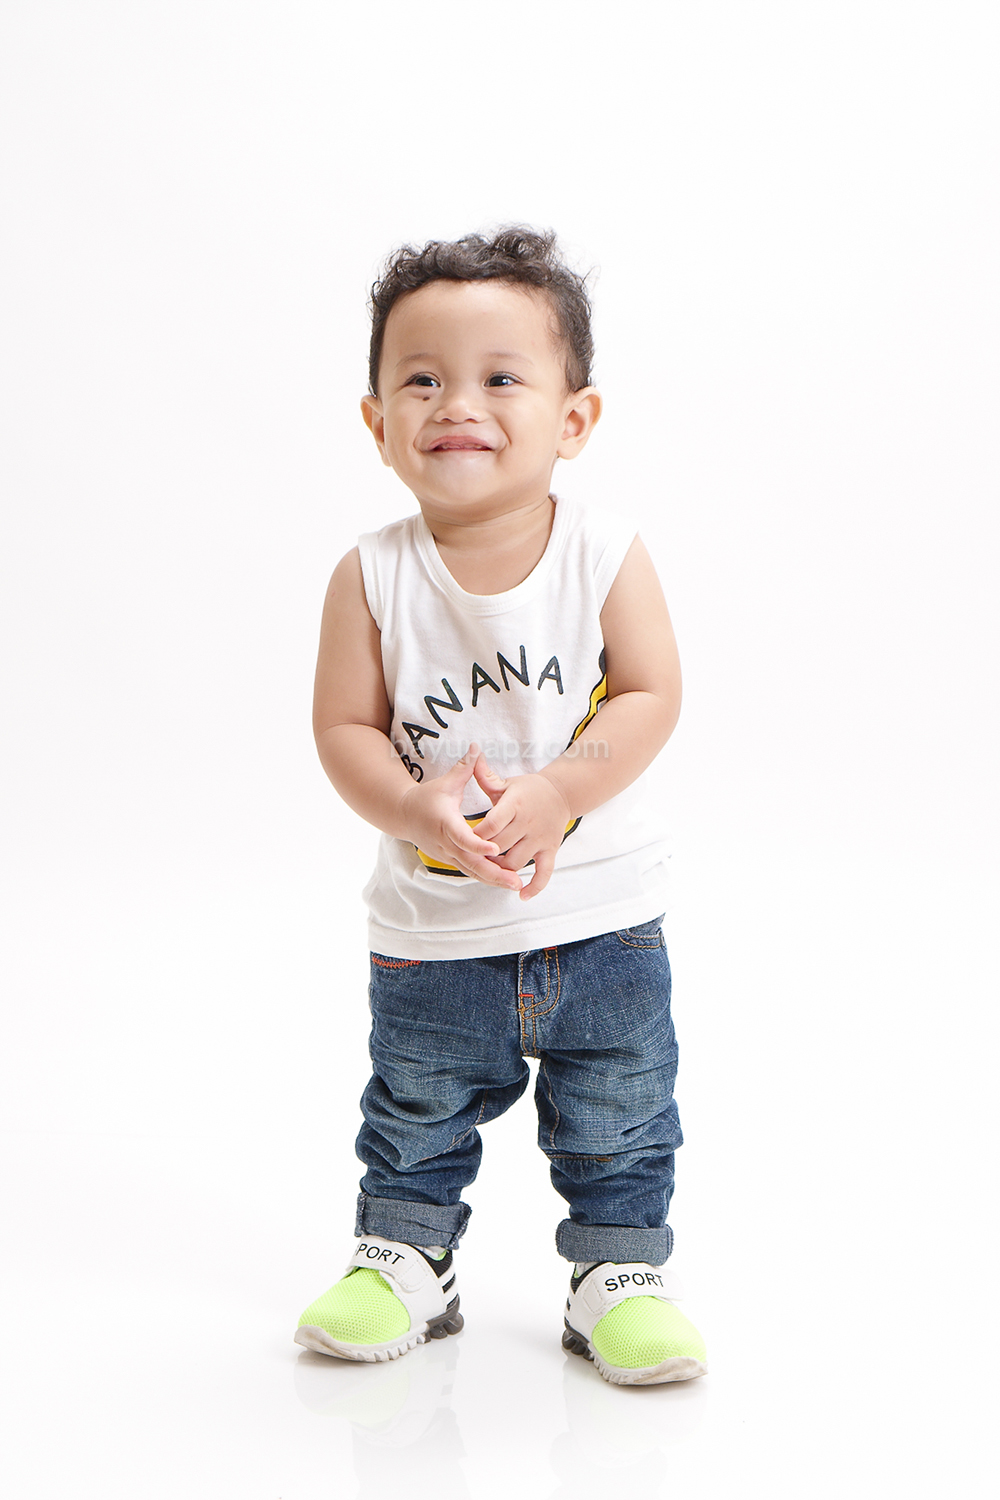 baby photography blush and beryl balita fotografi 1